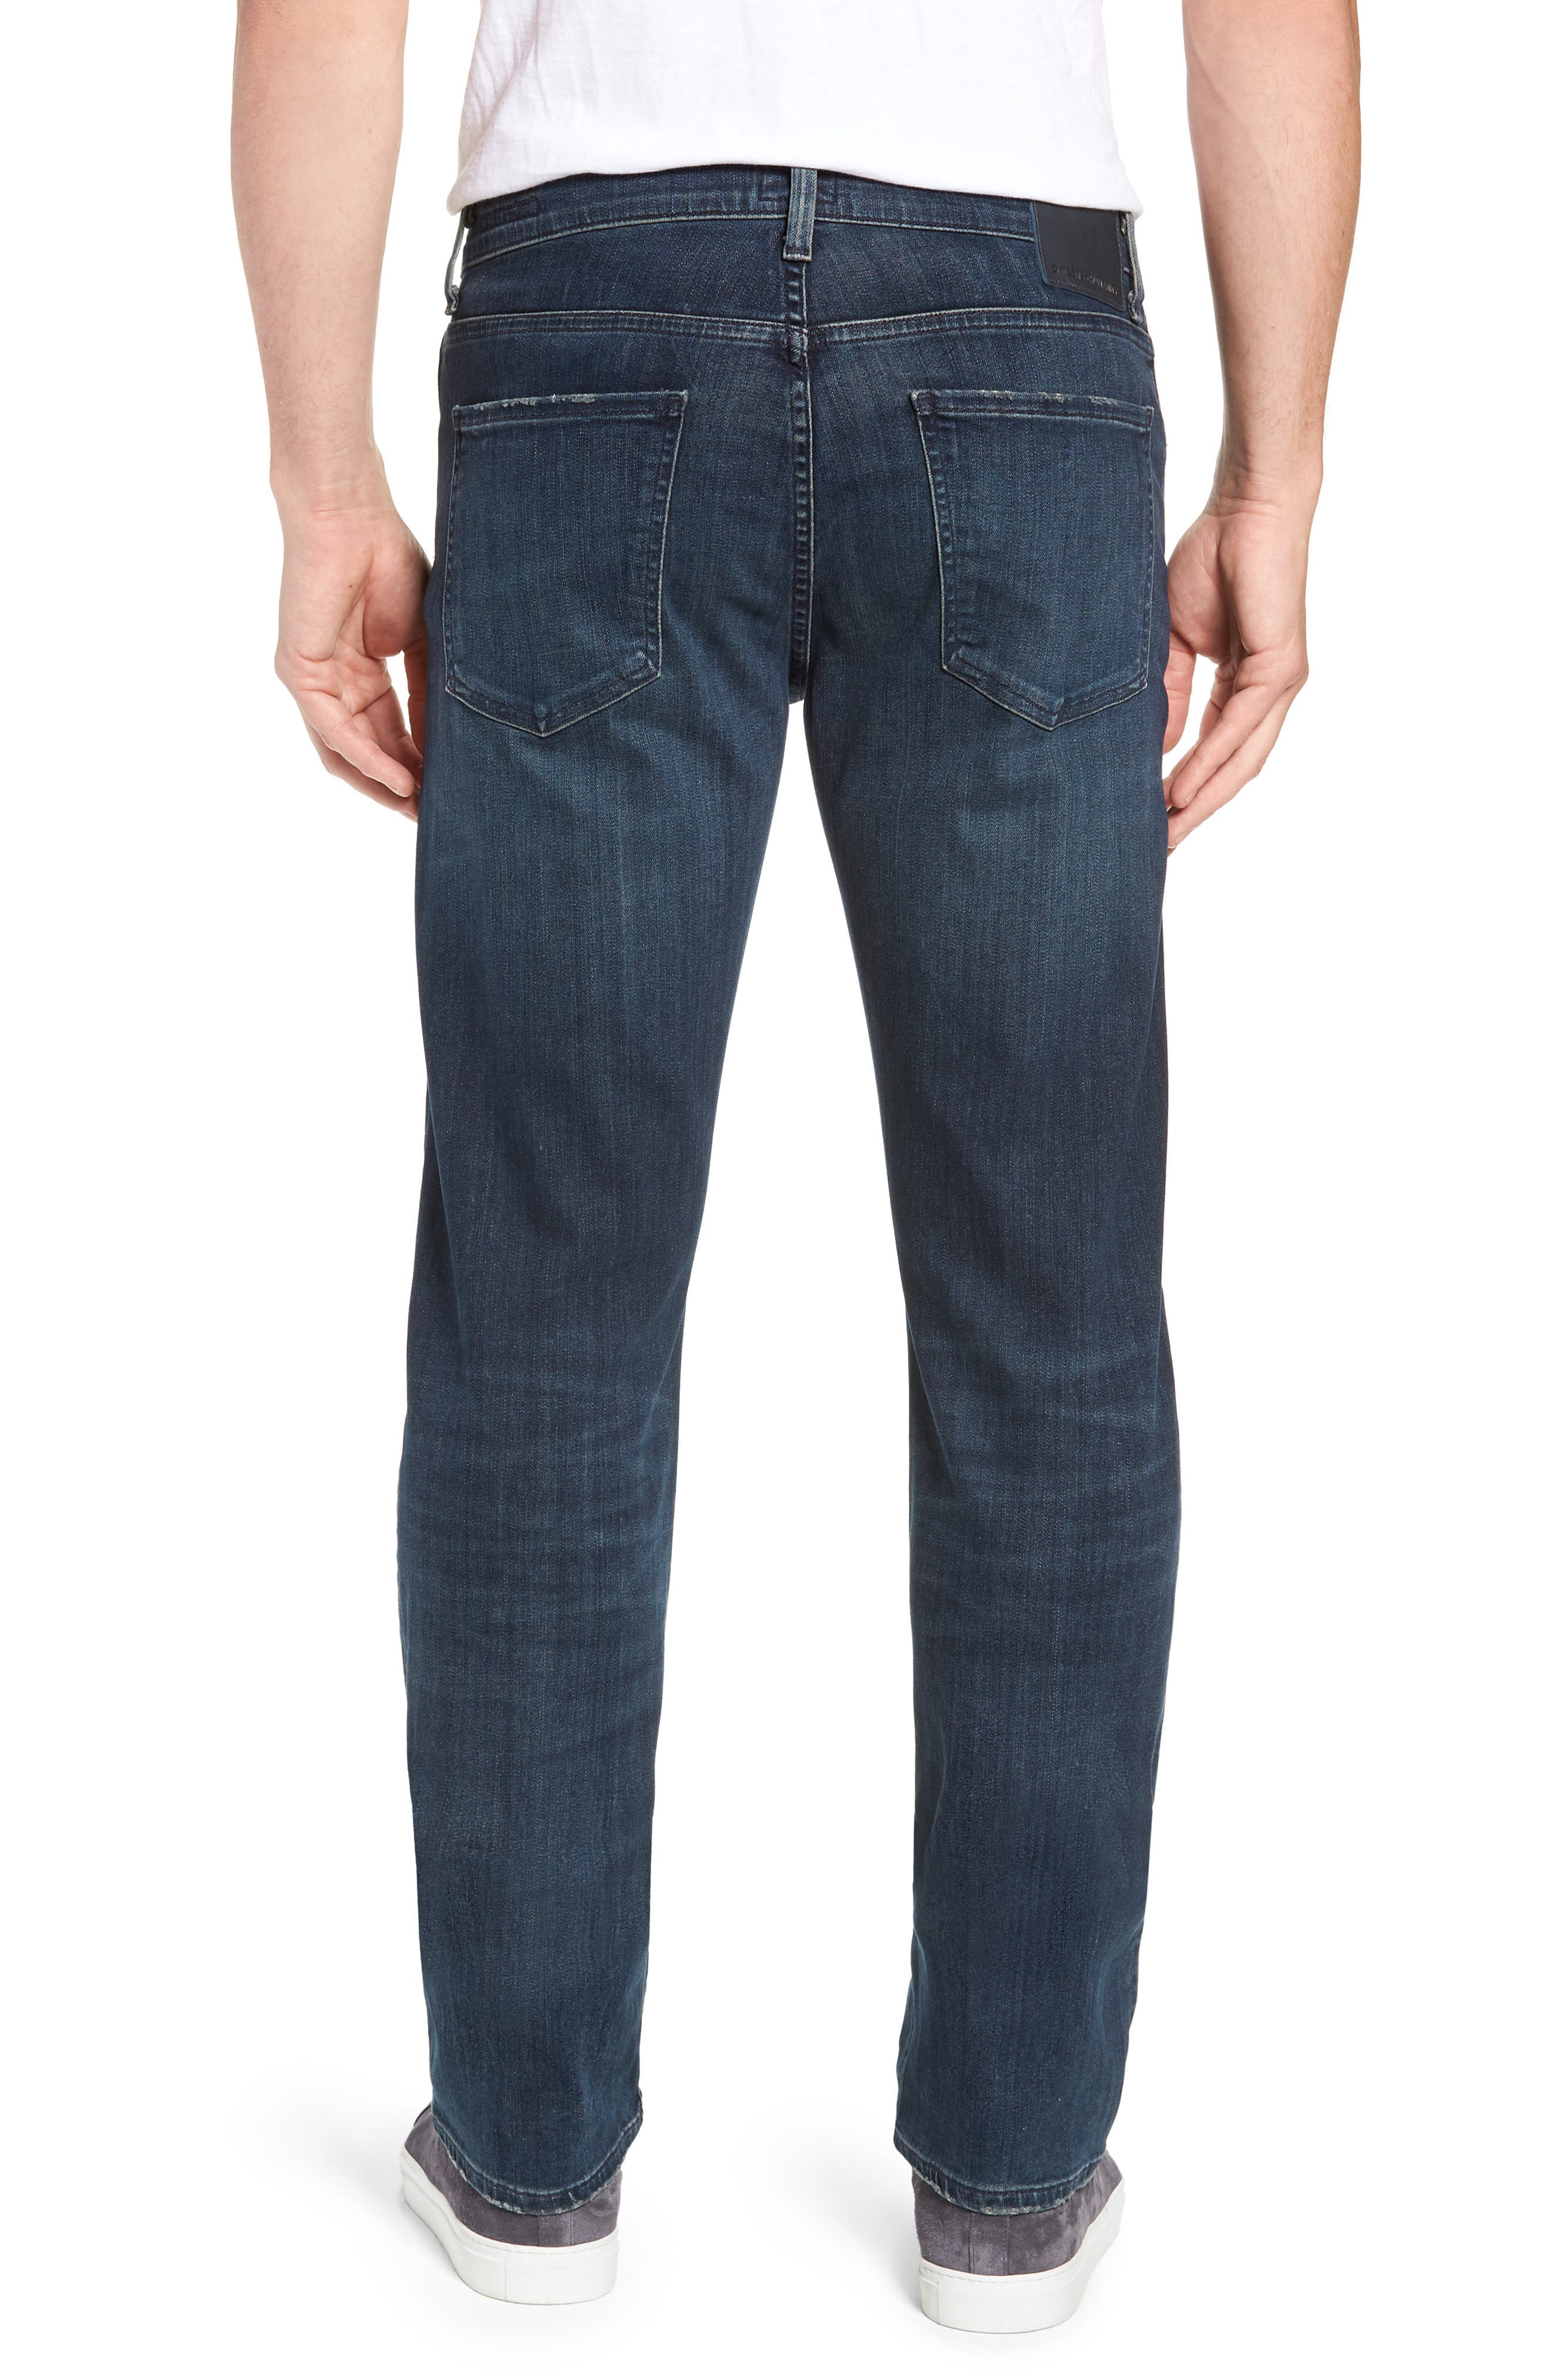 PERFORM - Sid Straight Leg Jeans,                             Alternate thumbnail 3, color,                             NORLAND